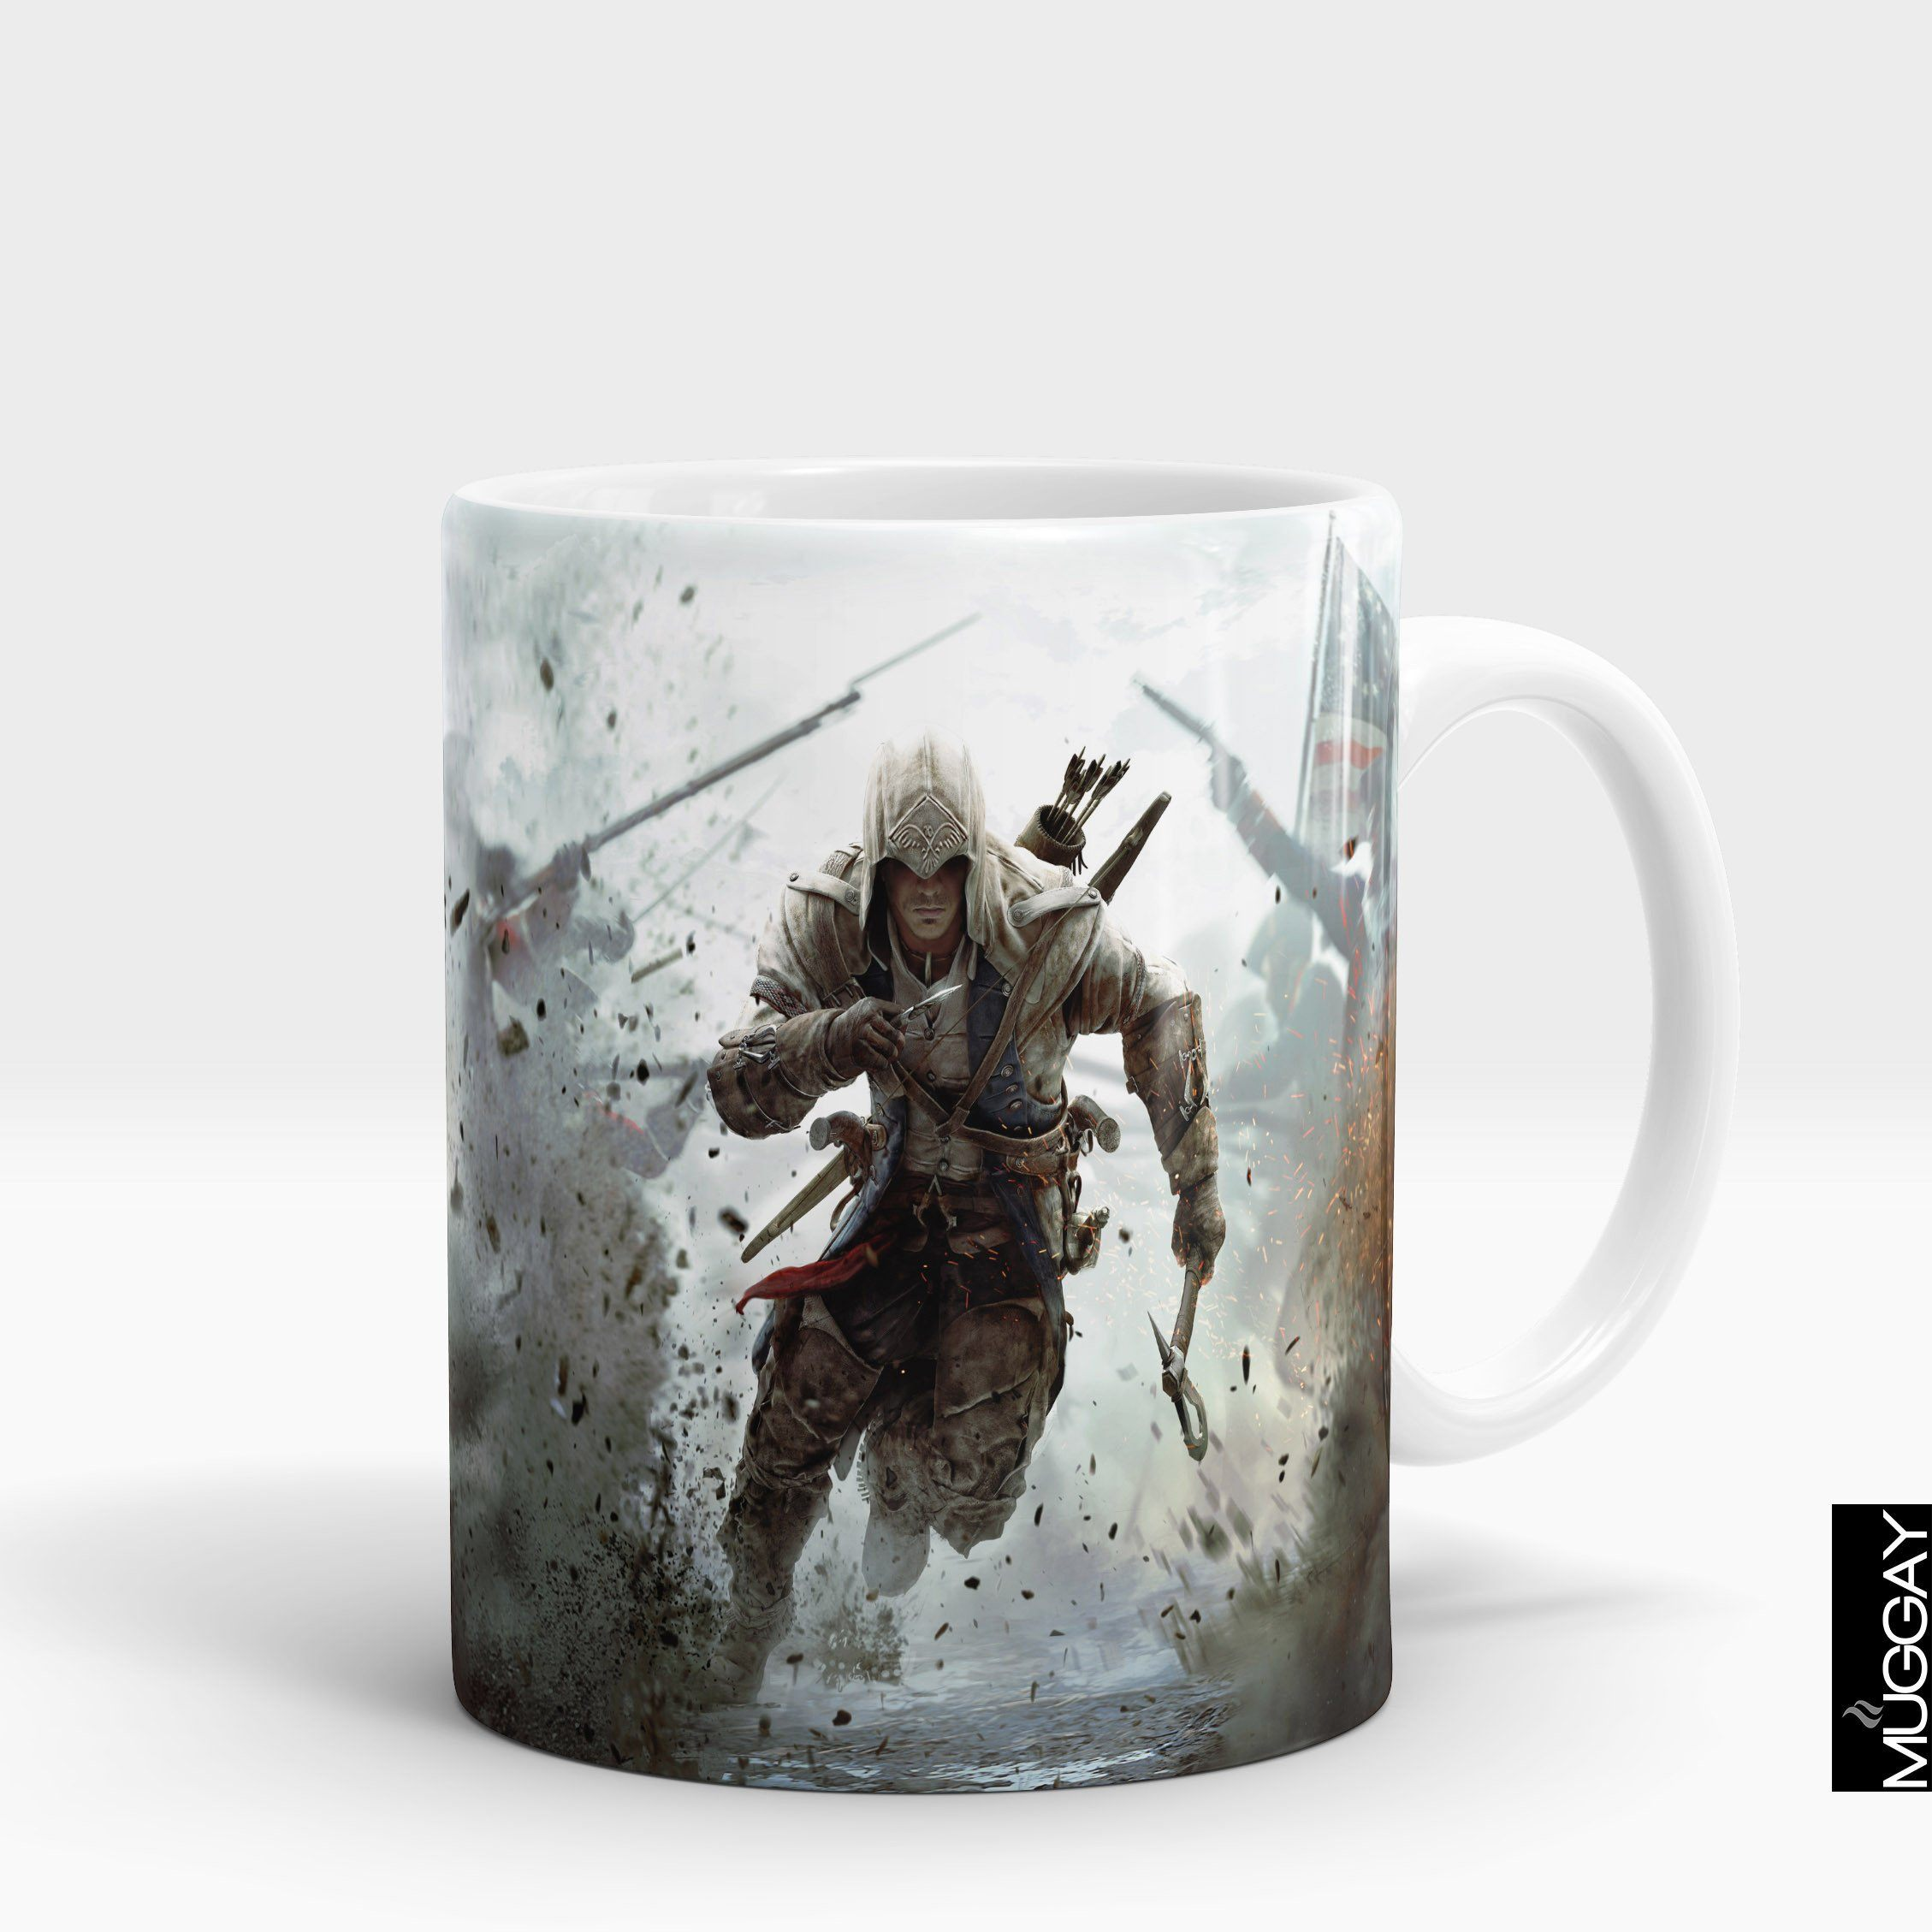 Assasins creed mugs - ac1 Assassins Creed Muggay.com white